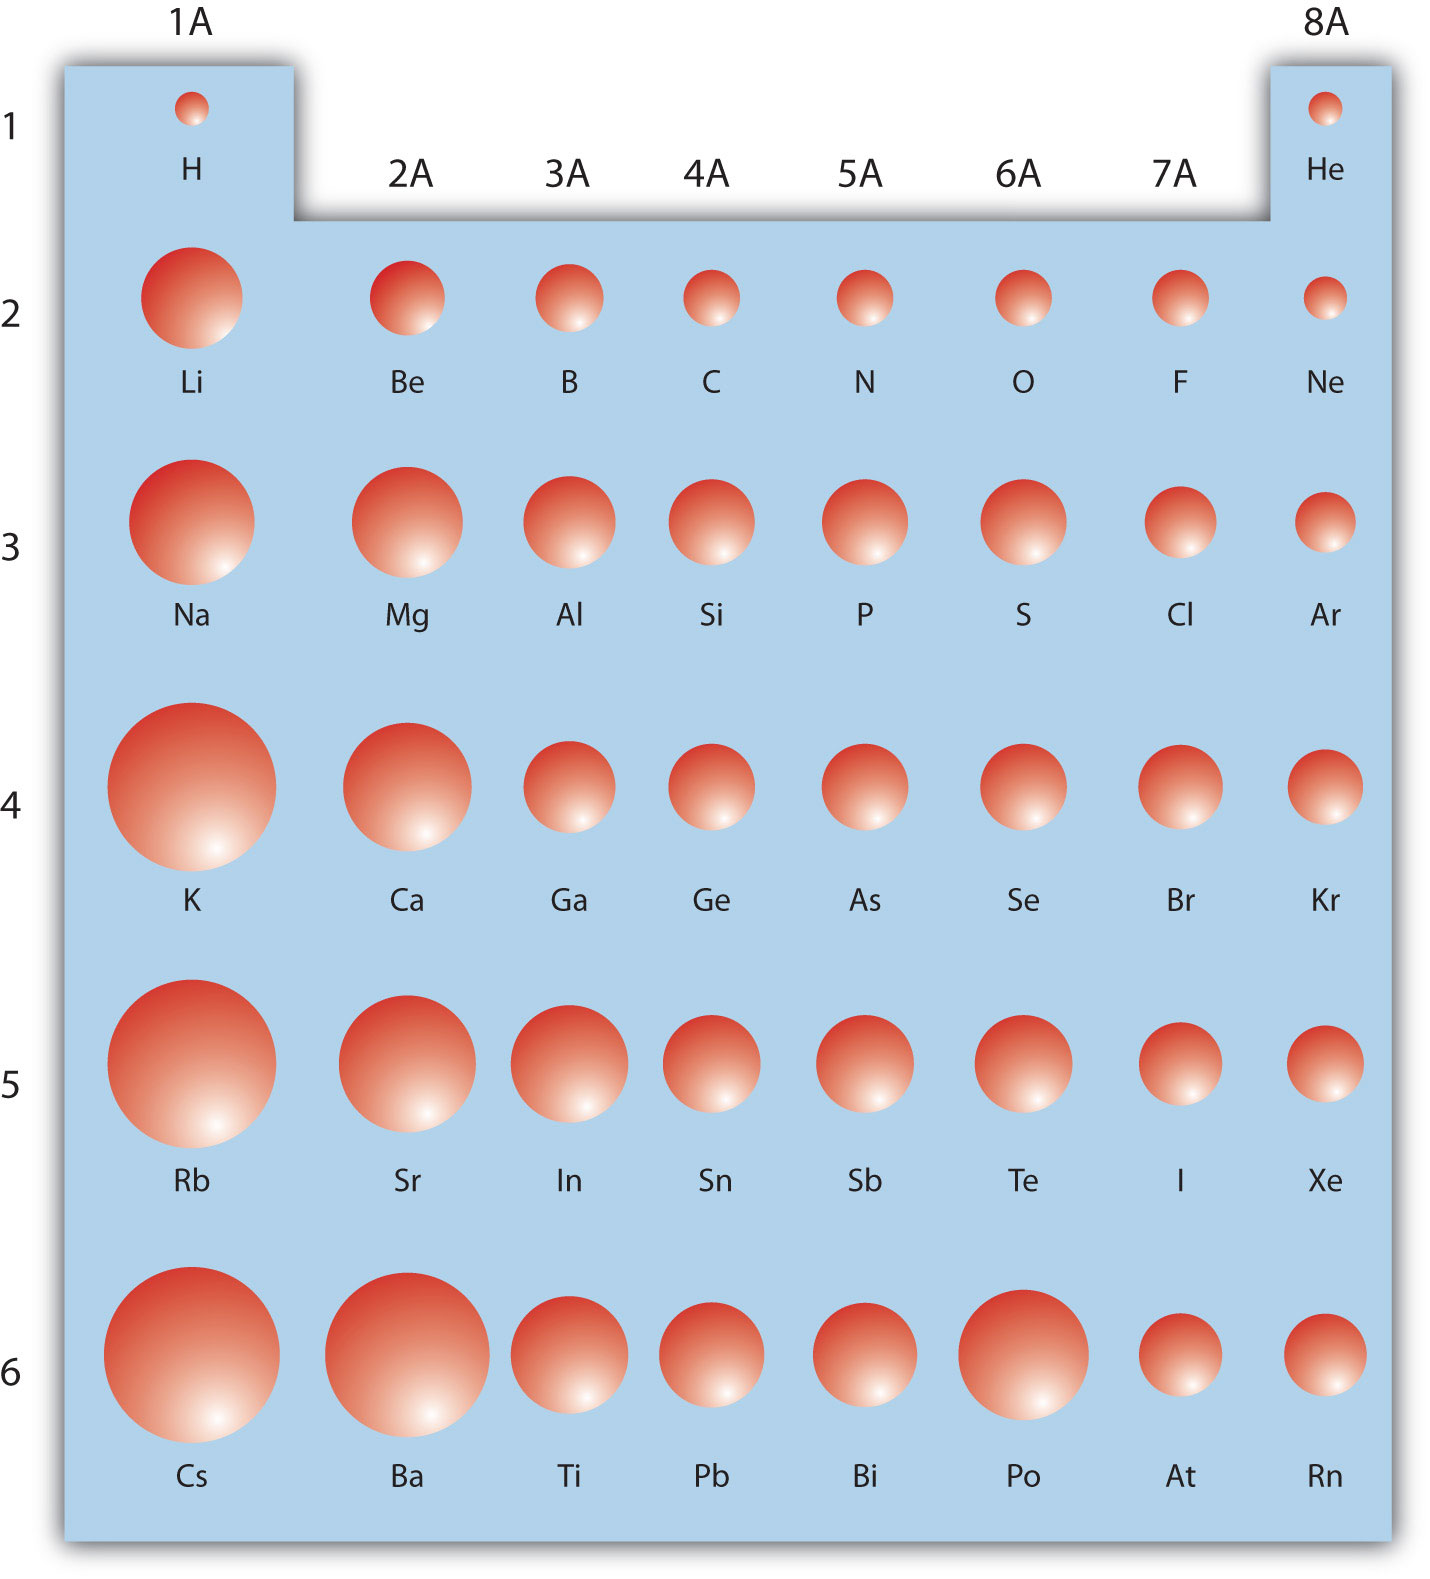 Elements atoms and the periodic table example 10 using the periodic table urtaz Image collections